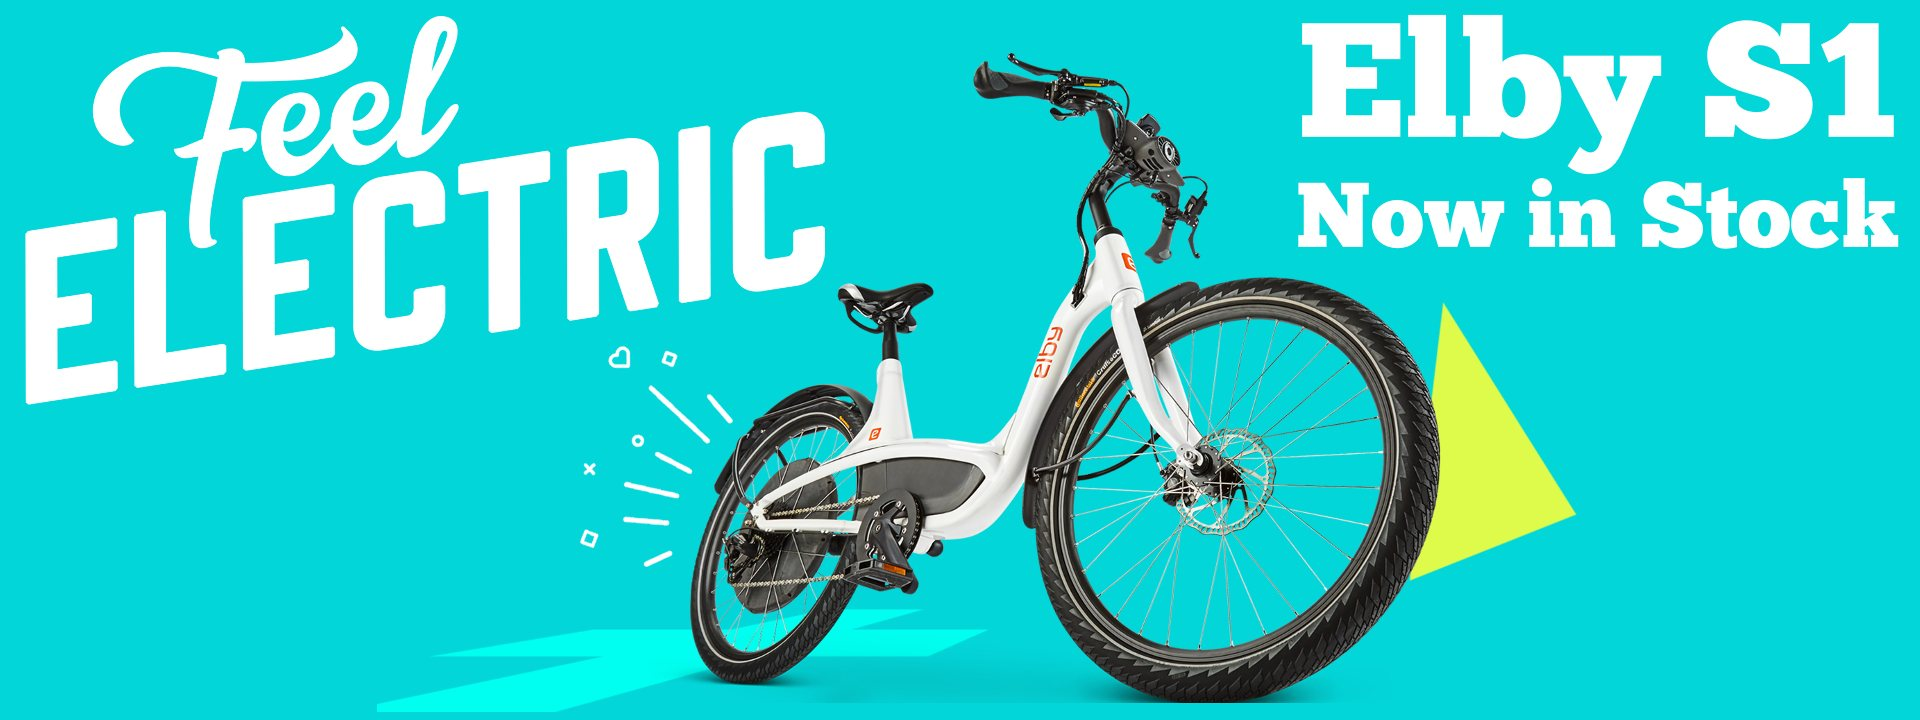 Electrify your ride!